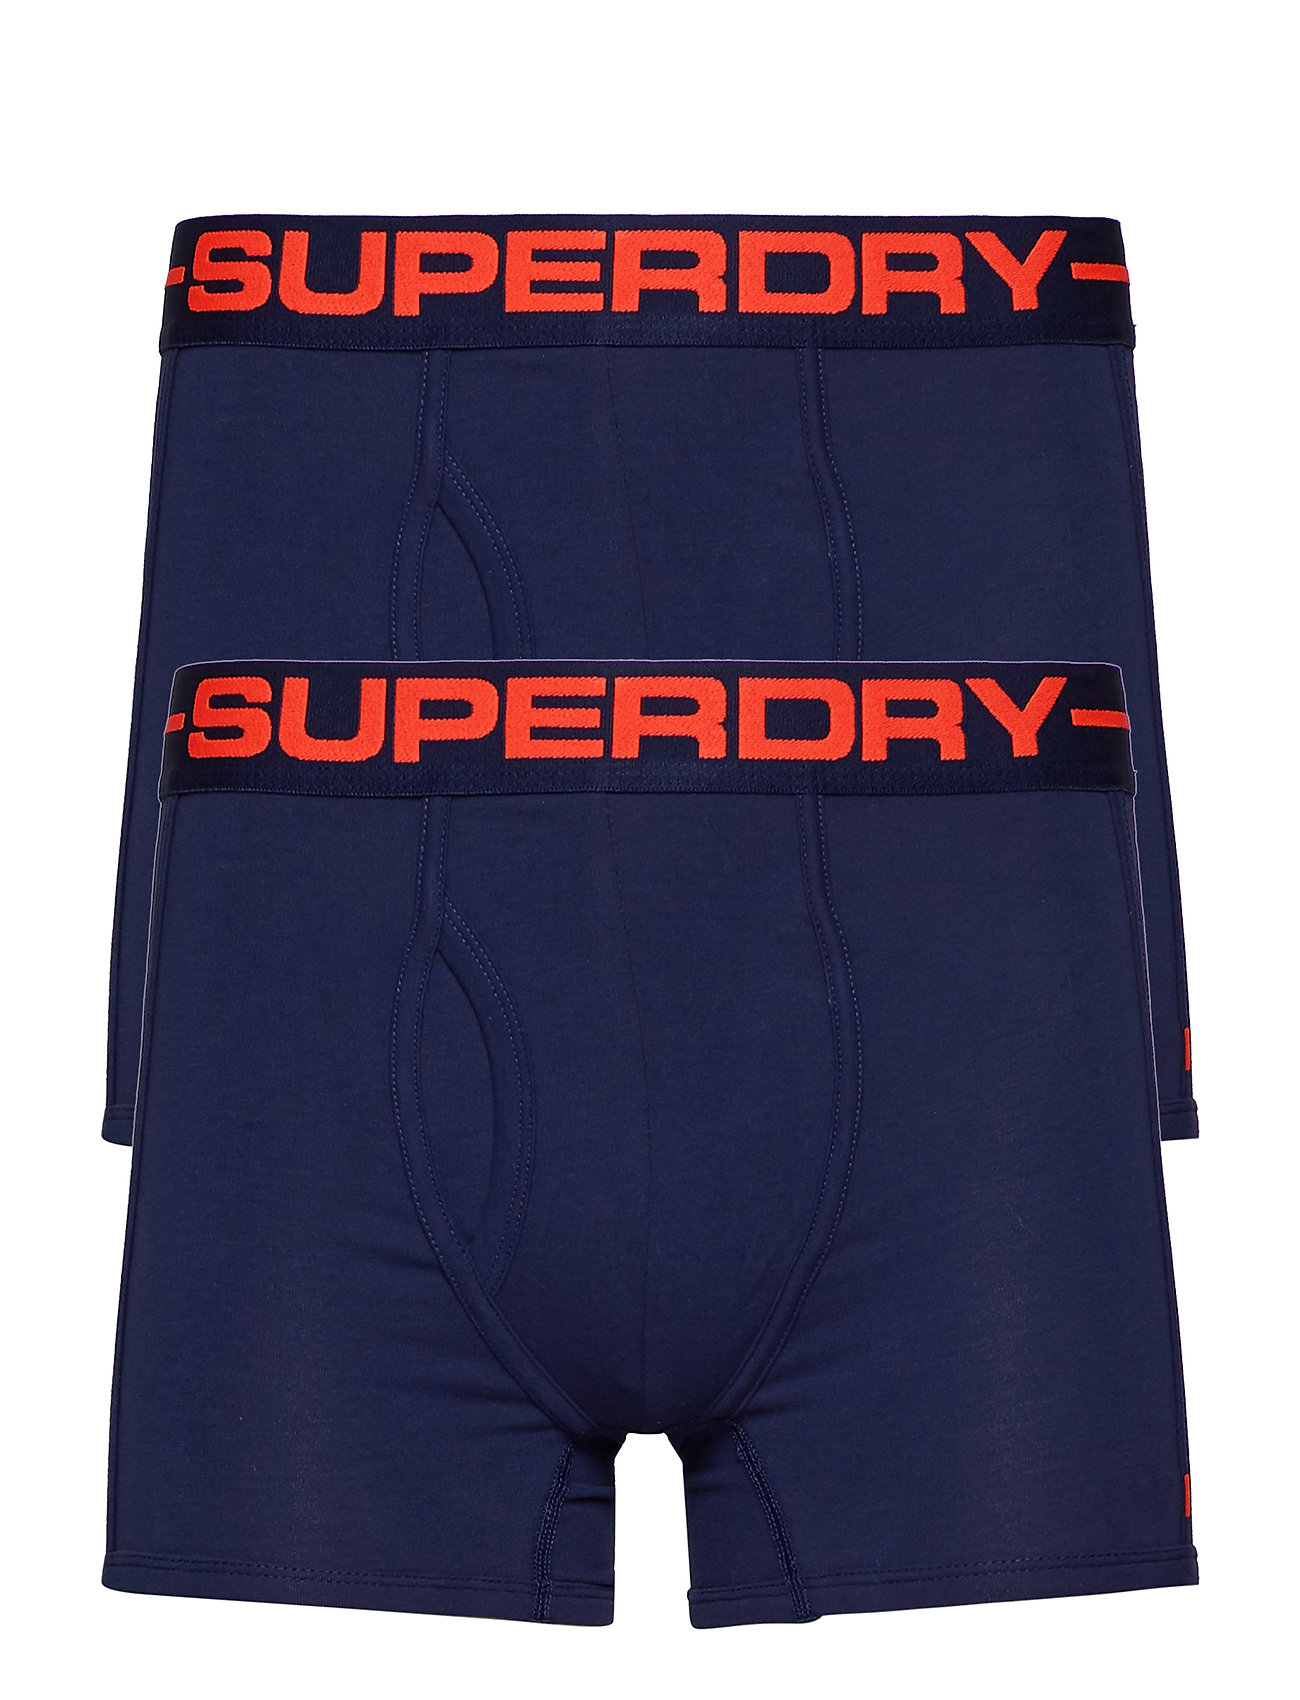 Superdry SPORT BOXER DOUBLE PACK - RICHEST NAVY/RICHEST NAVY